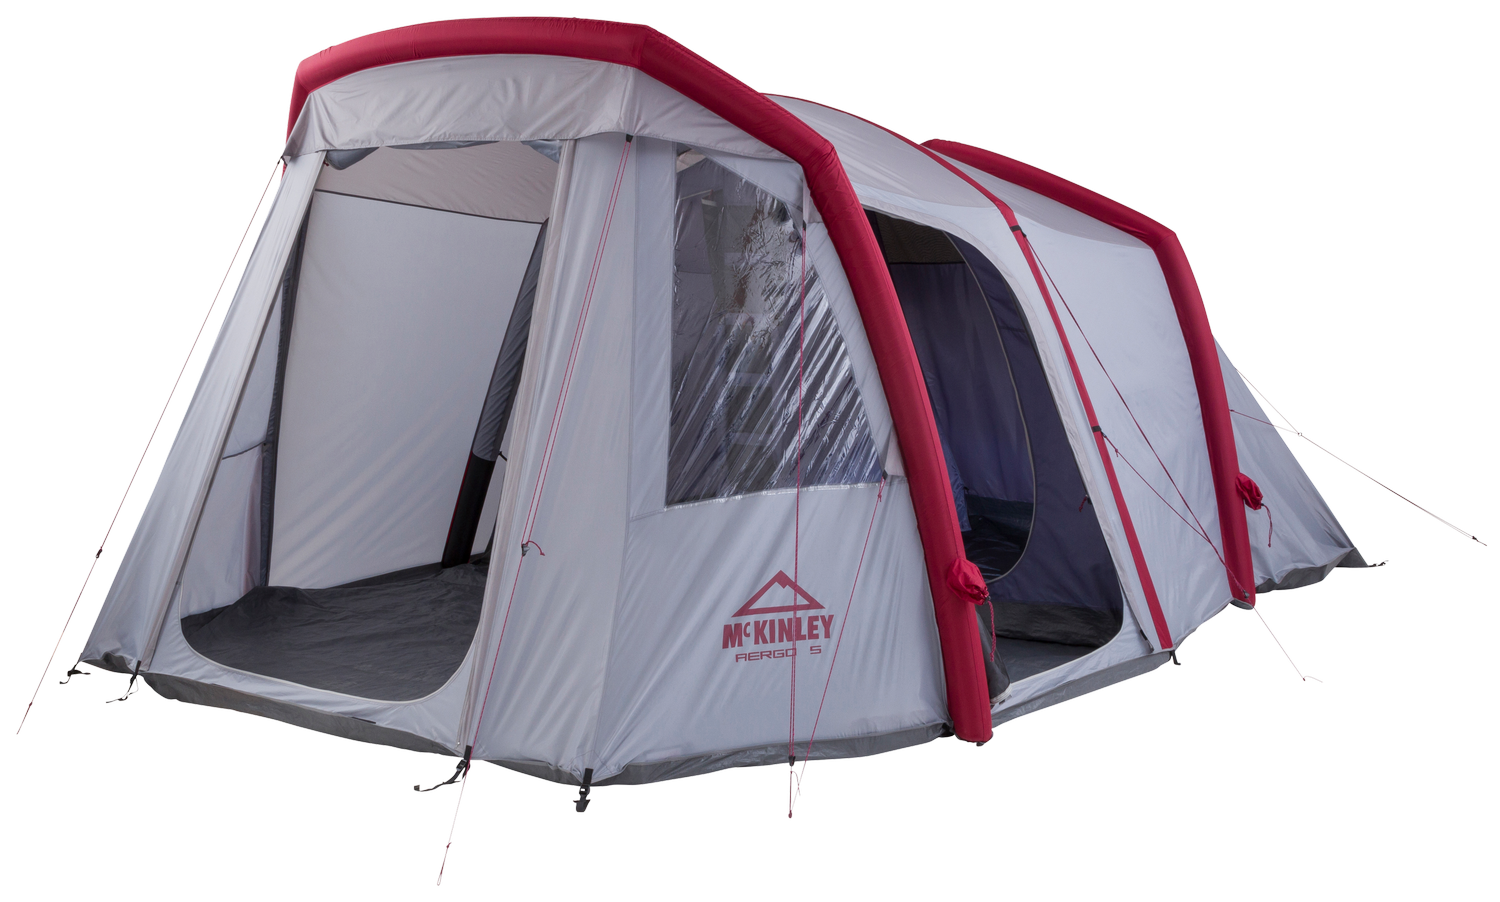 White Tent PNG Image